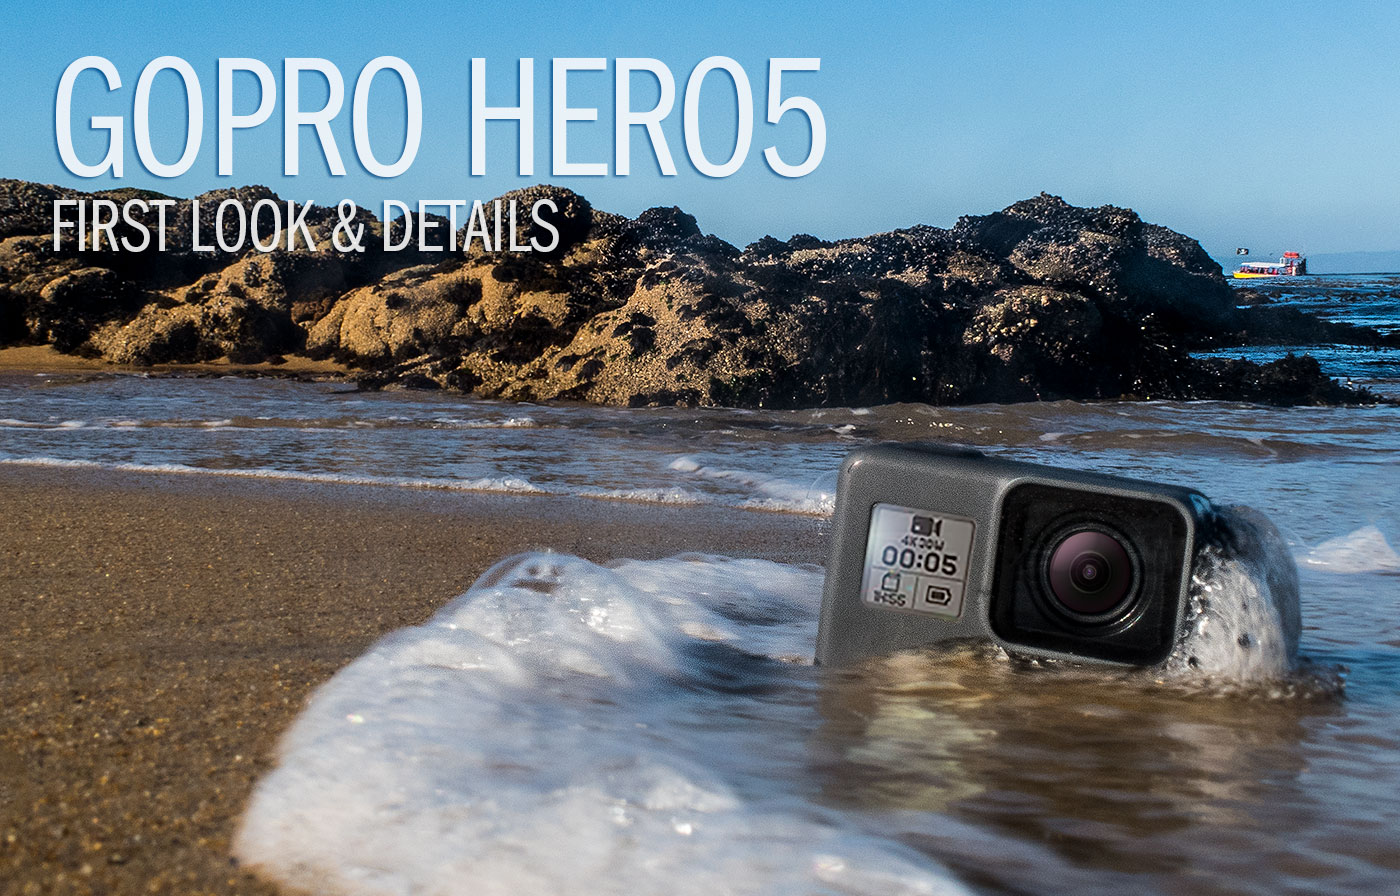 GoPro HERO5 Hands On Underwater Review